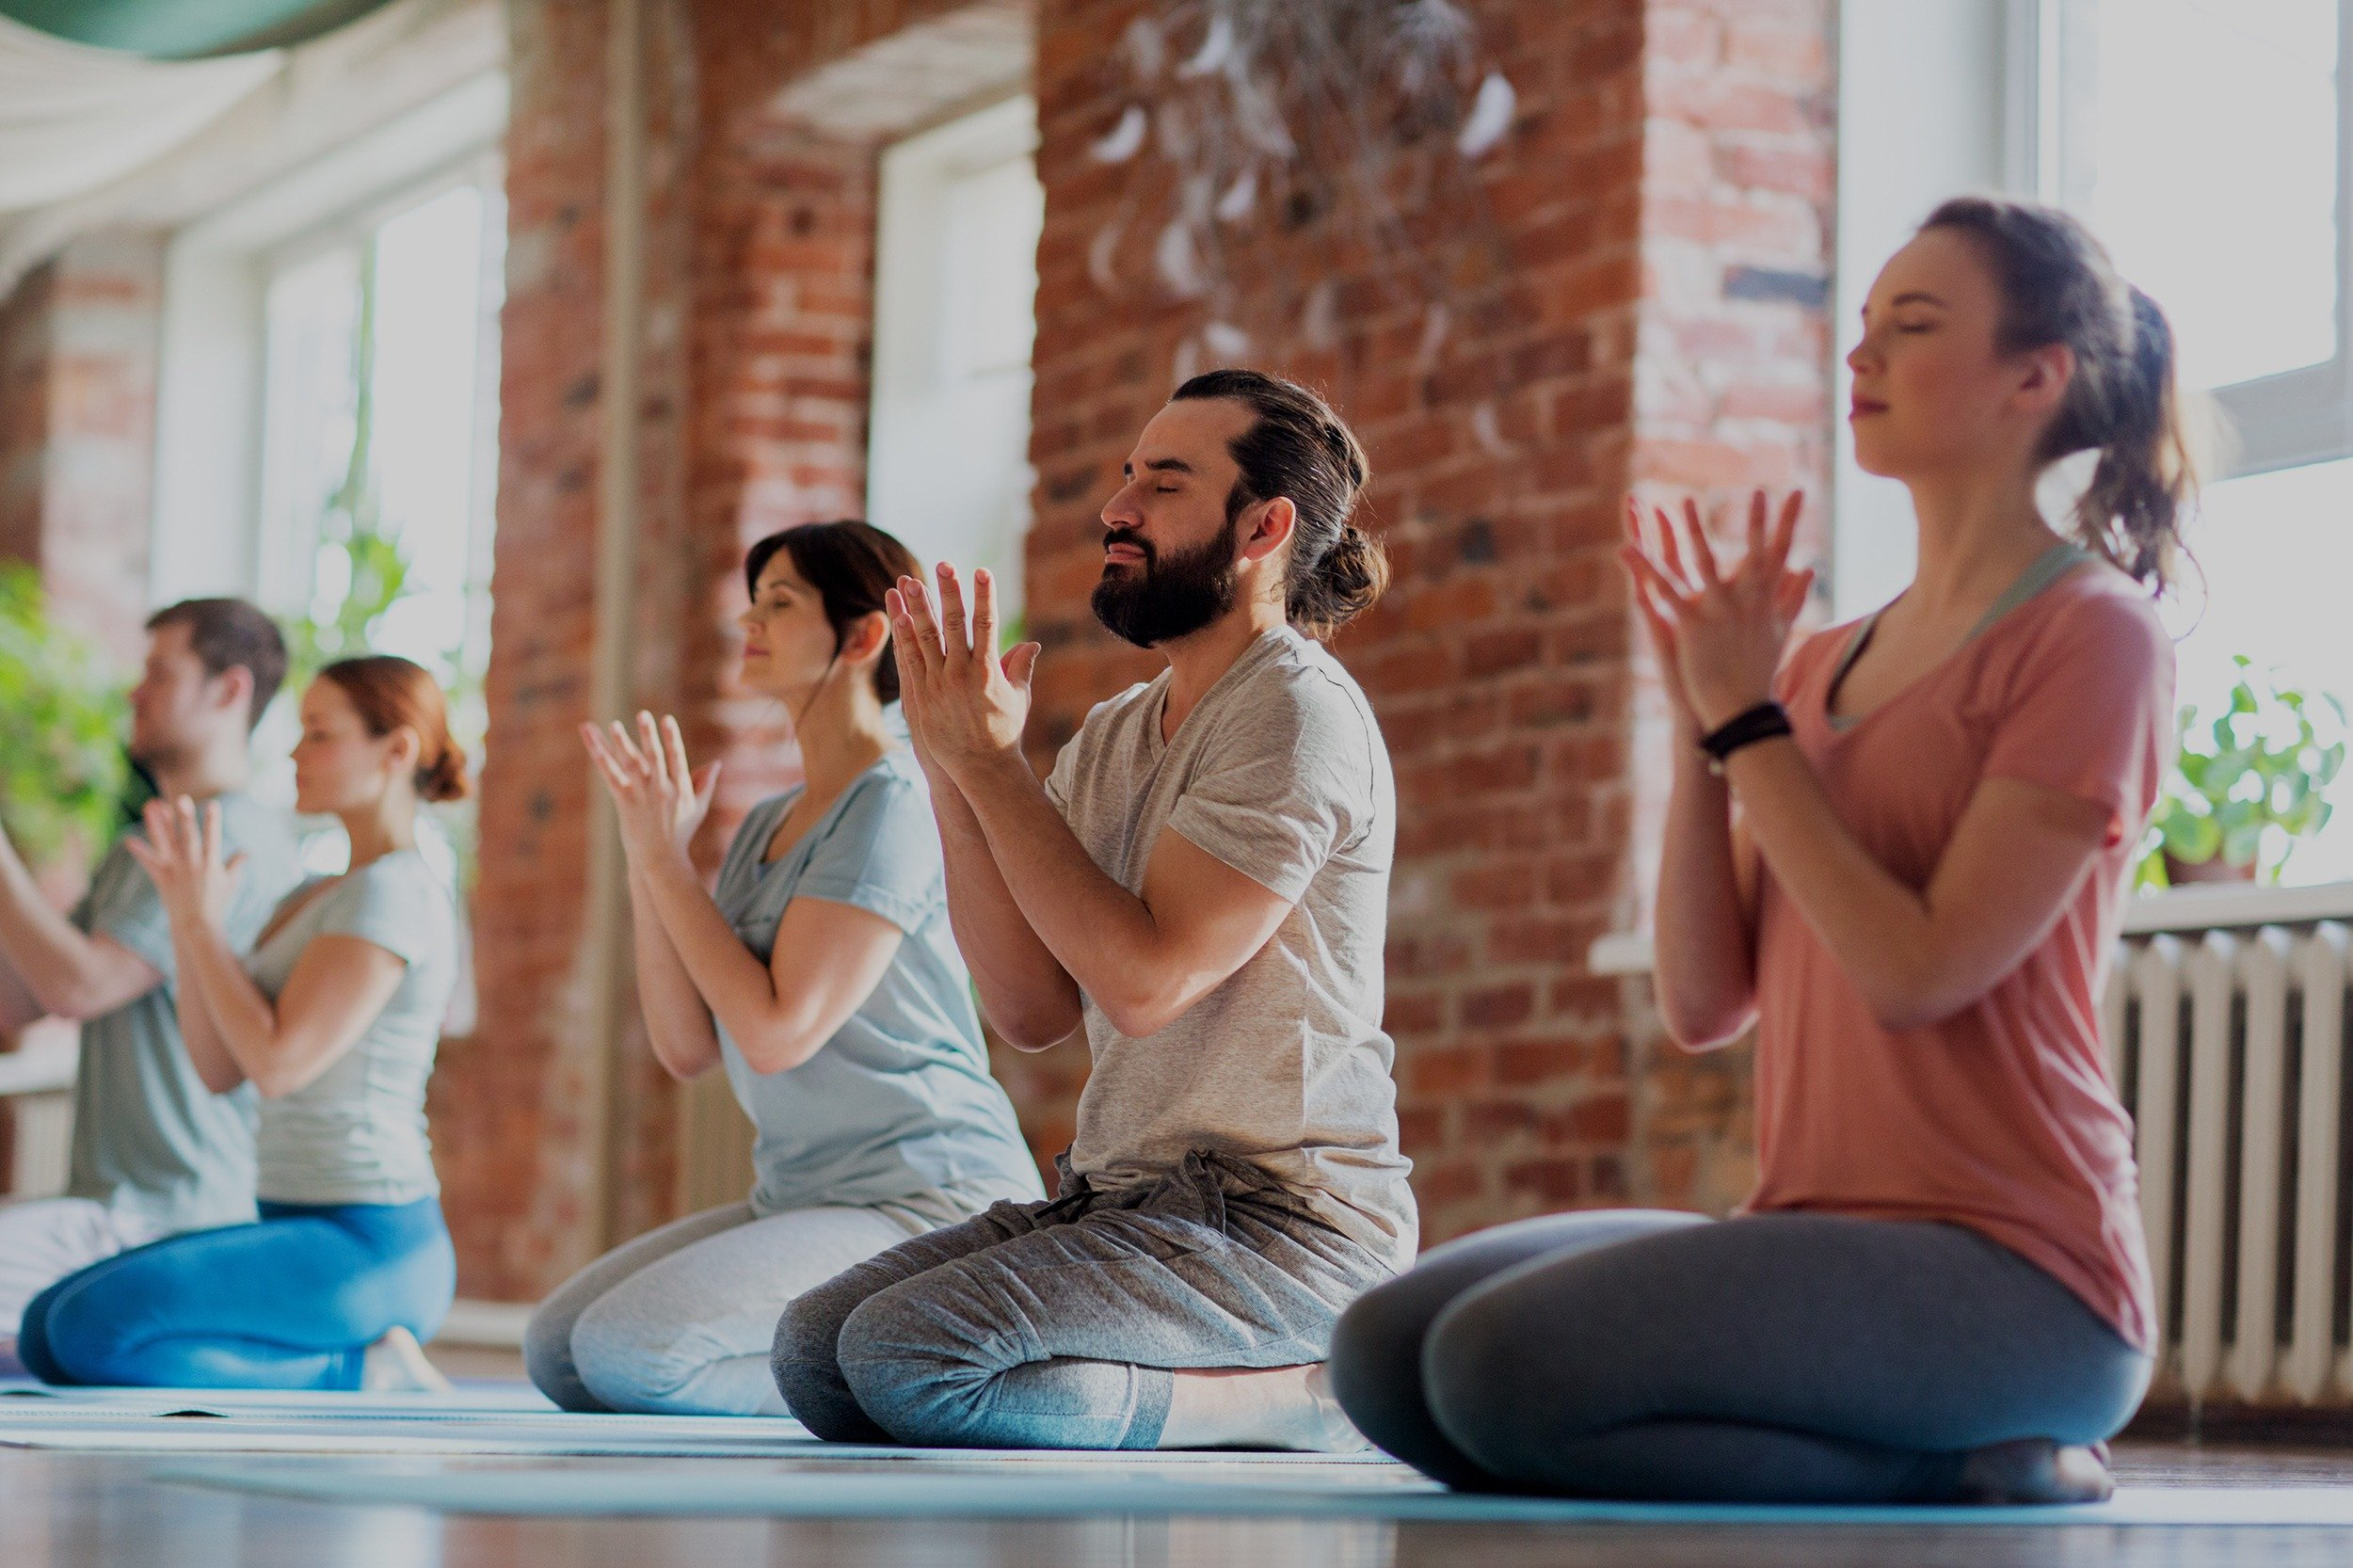 Group of people meditating at a yoga studio